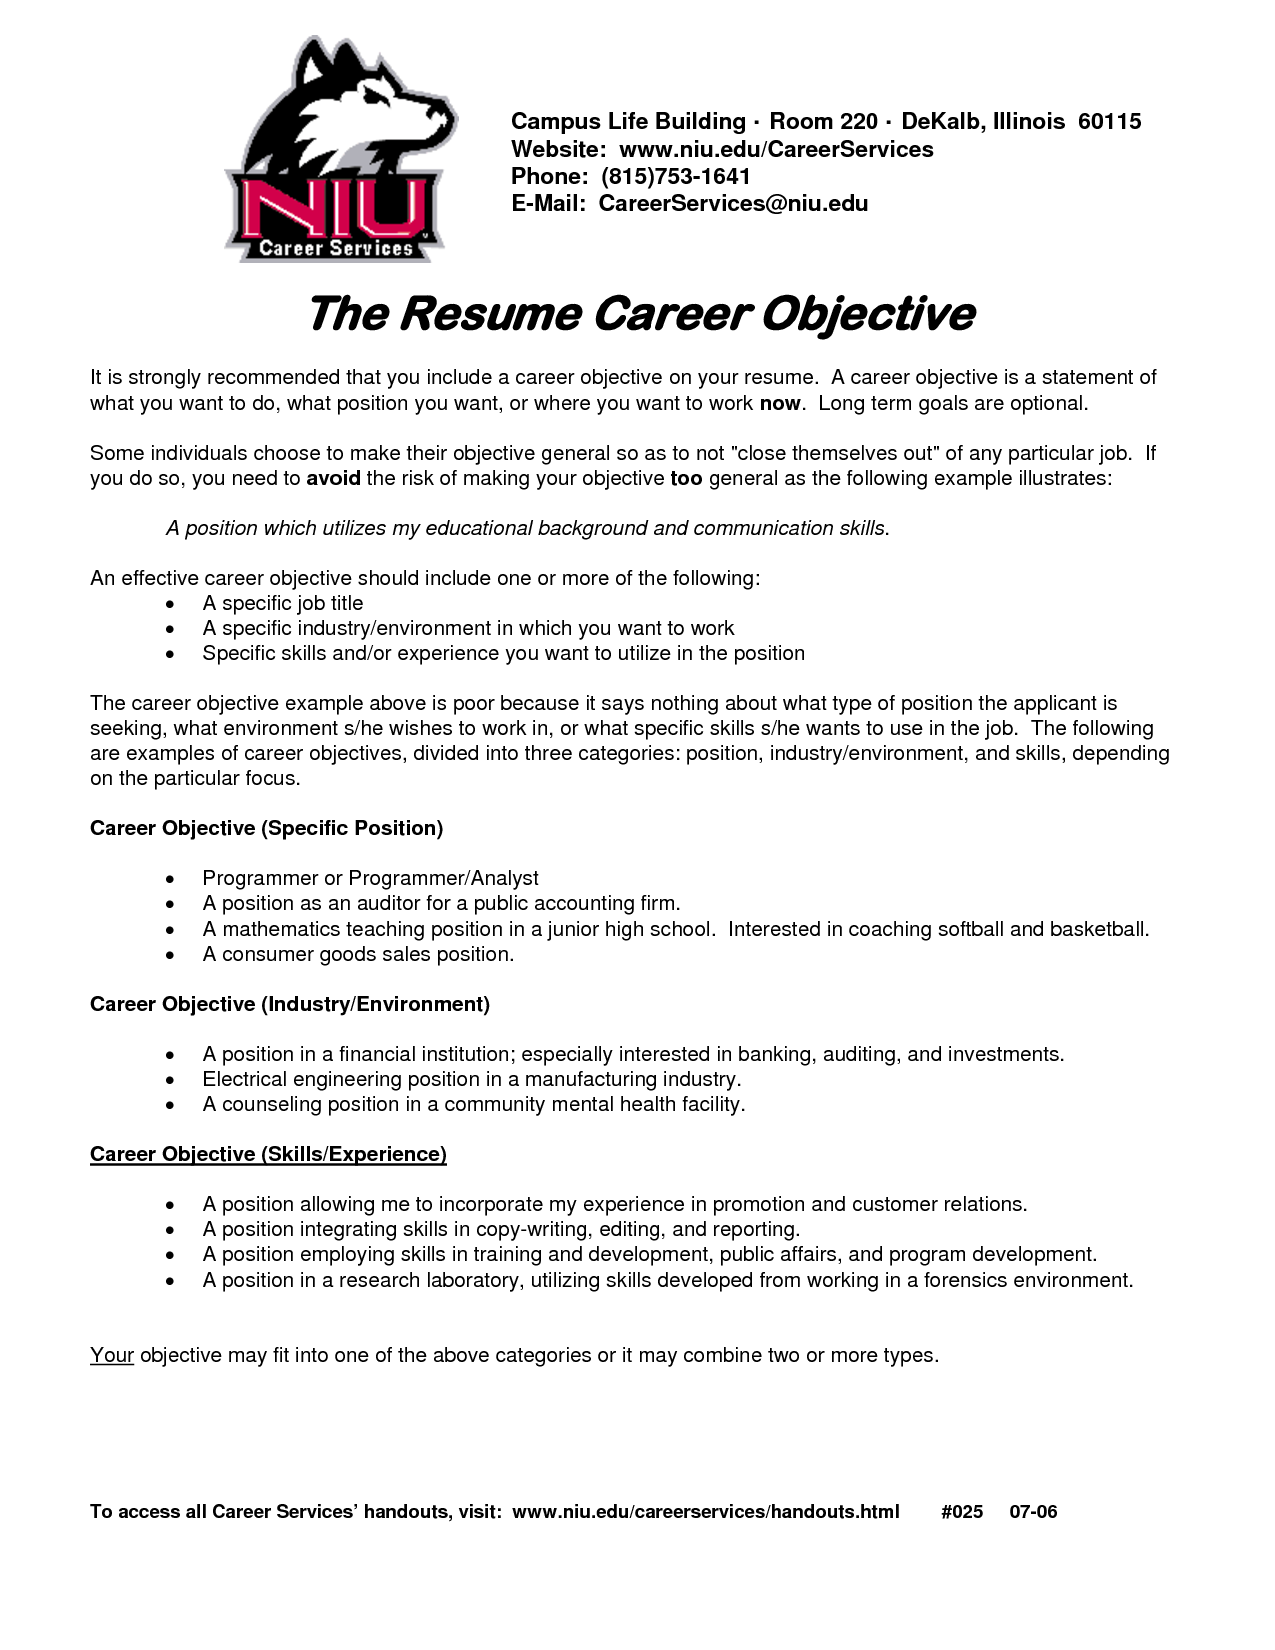 Lovely Good Work Objective For Resume Sample Job Objective Resume Writing Career  Objective Statement . Within Should I Include An Objective On My Resume